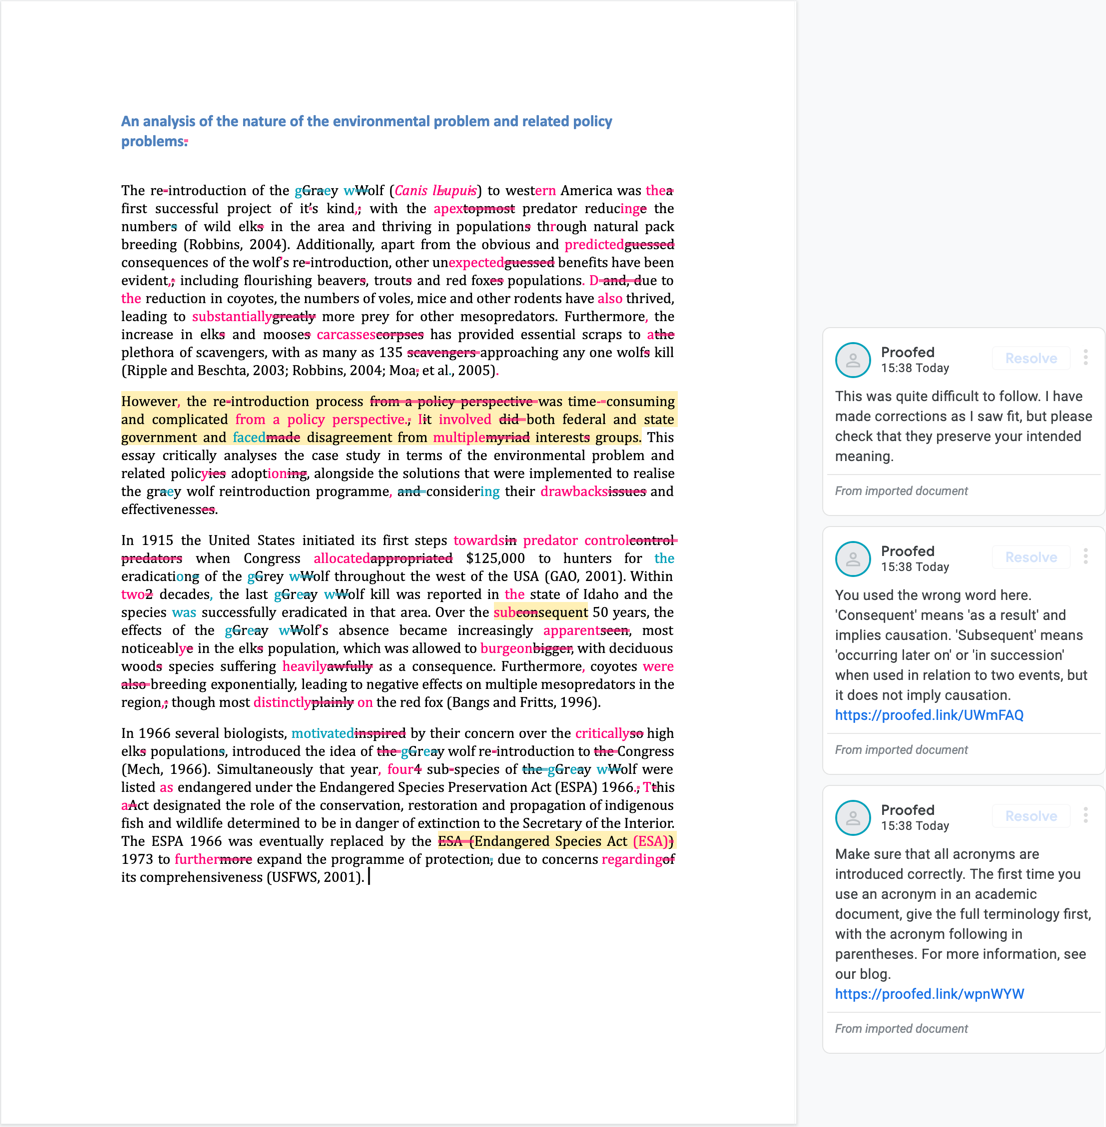 Google Doc Proofreading Example (After Editing)